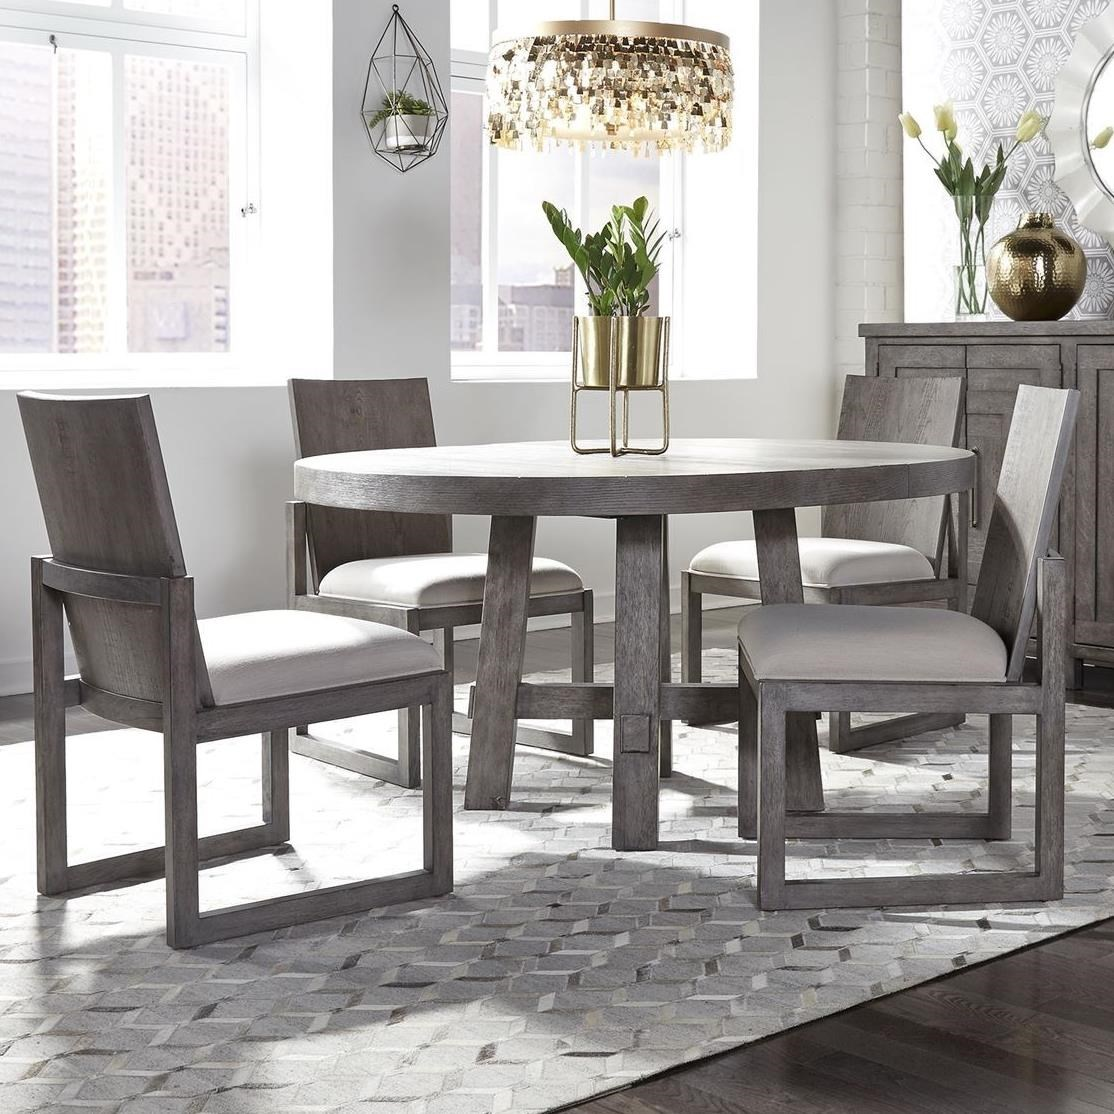 Freedom Furniture Modern Farmhouse 5-Piece Round Table and ...